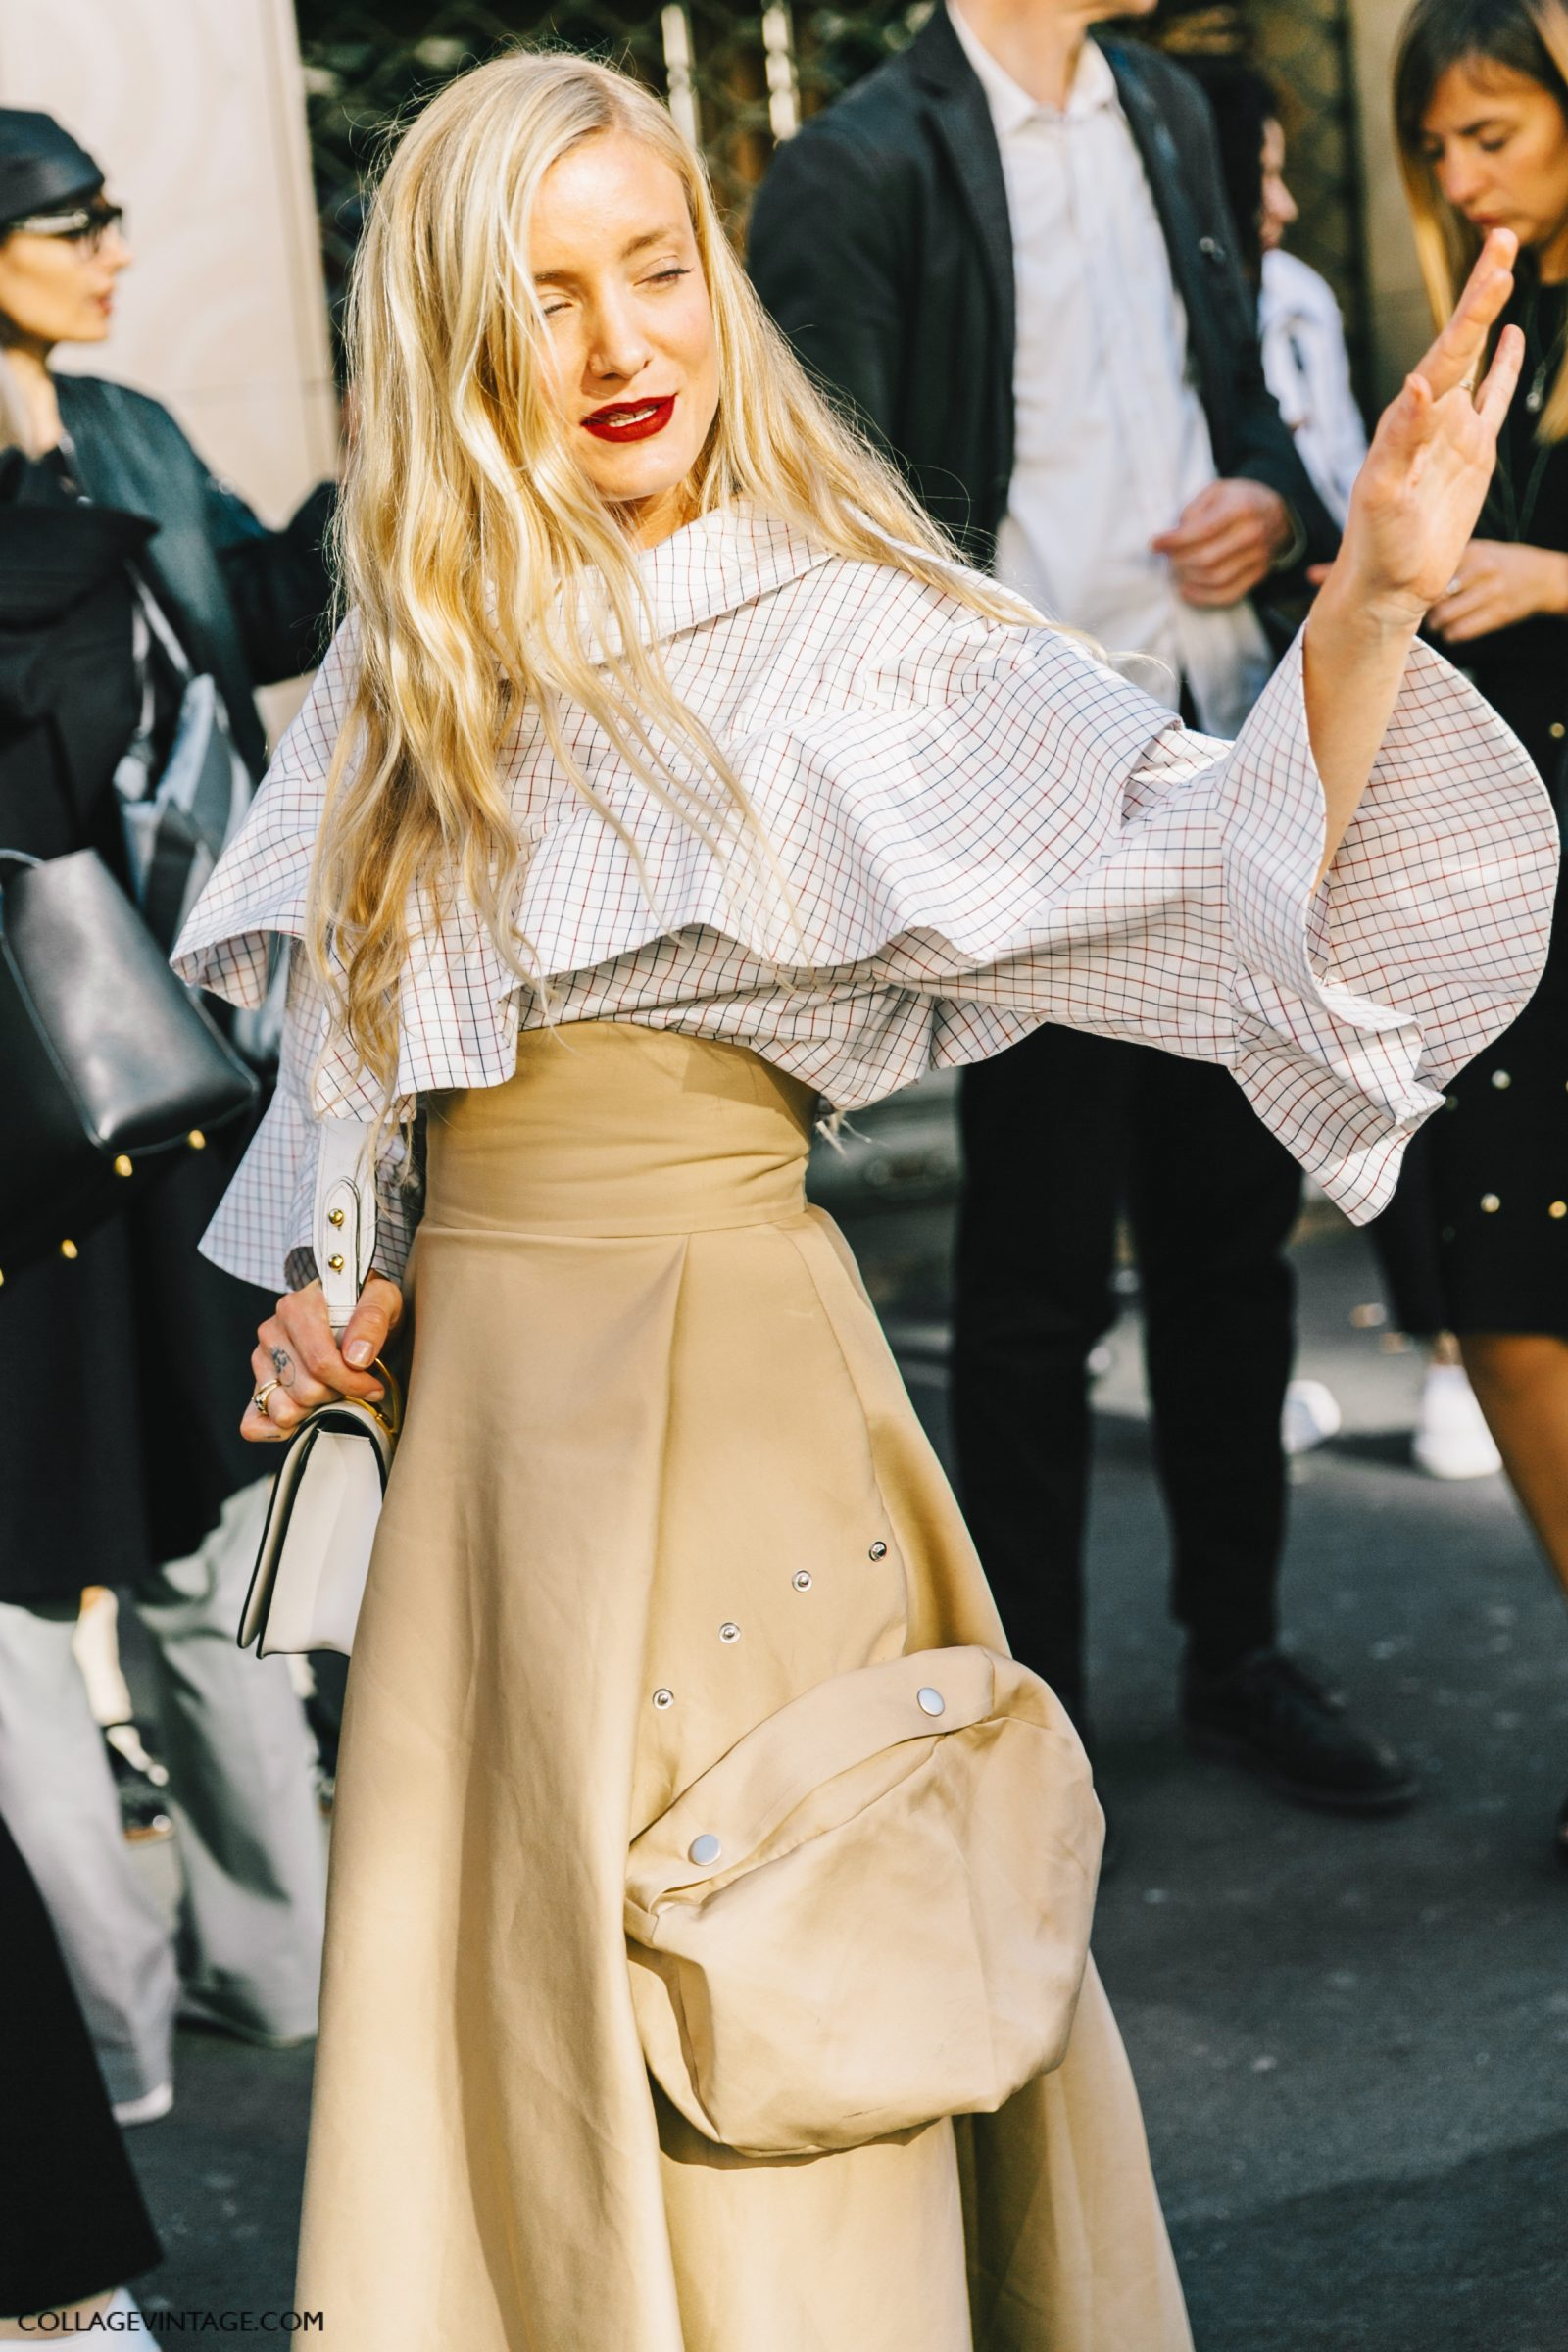 pfw-paris_fashion_week_ss17-street_style-outfits-collage_vintage-olympia_letan-hermes-stella_mccartney-sacai-188